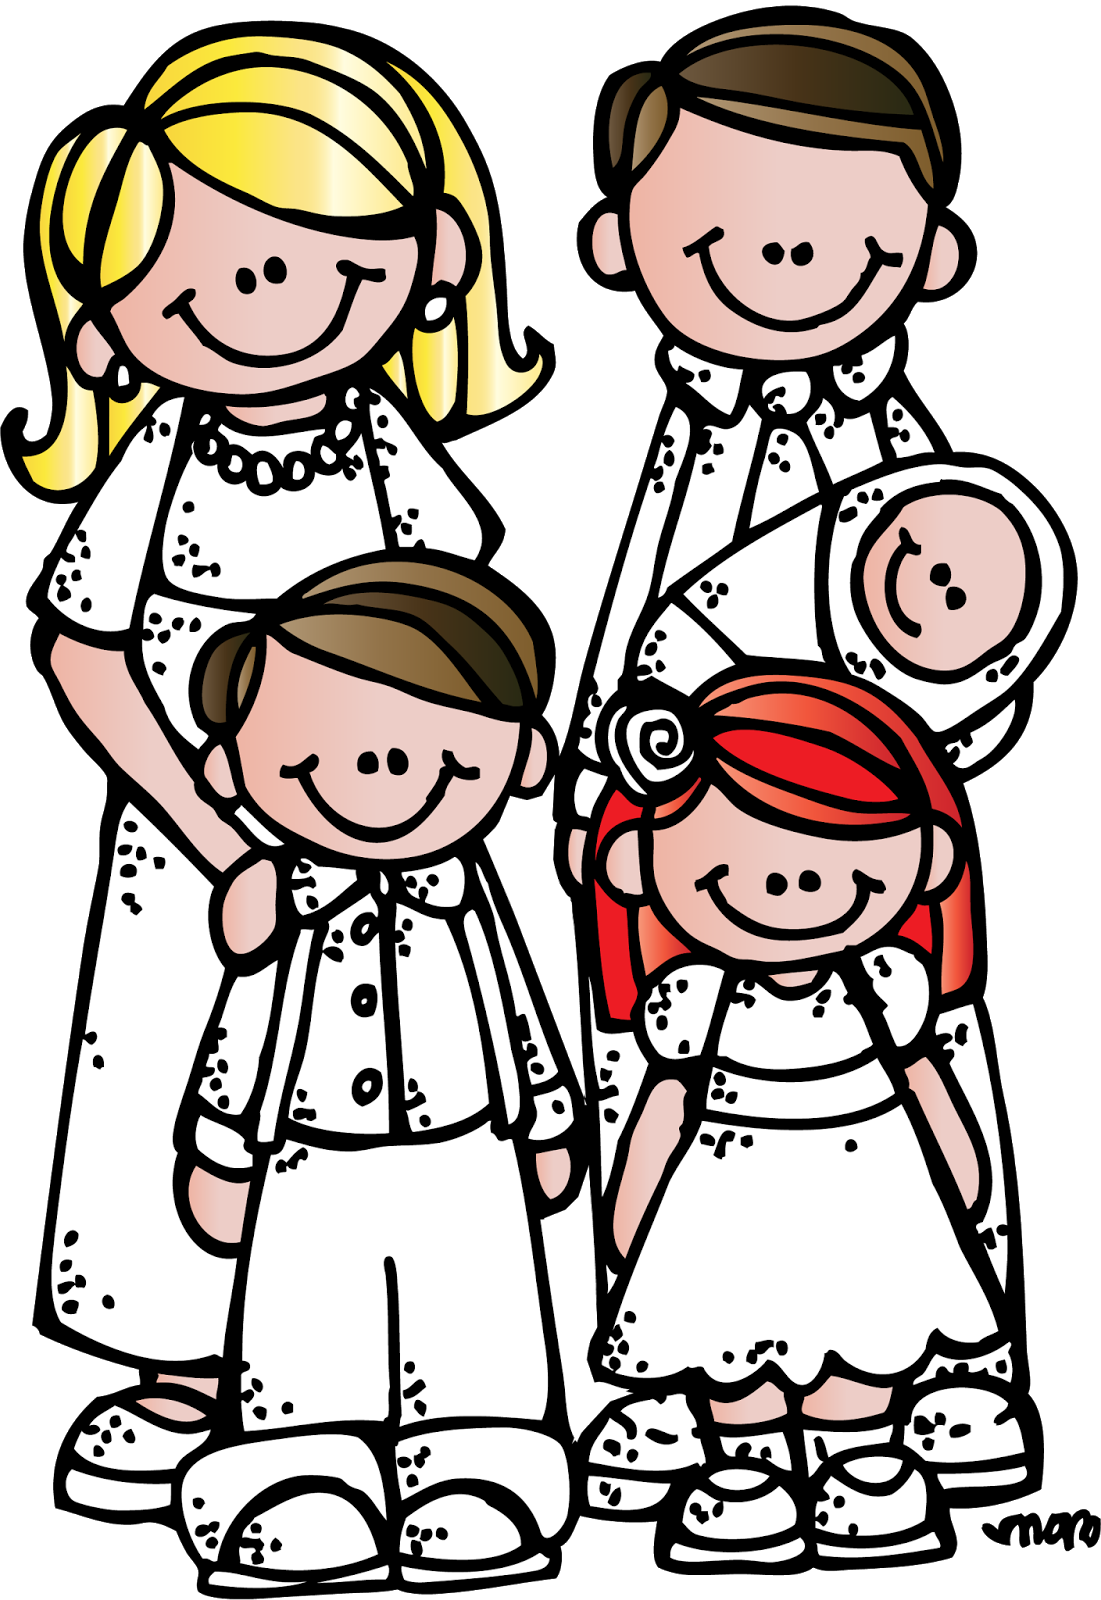 d7552dbef558283ef7a9f7a7226709ba lds clipart family lds clipart rh pinterest com lds clipart family prayer lds clipart family prayer